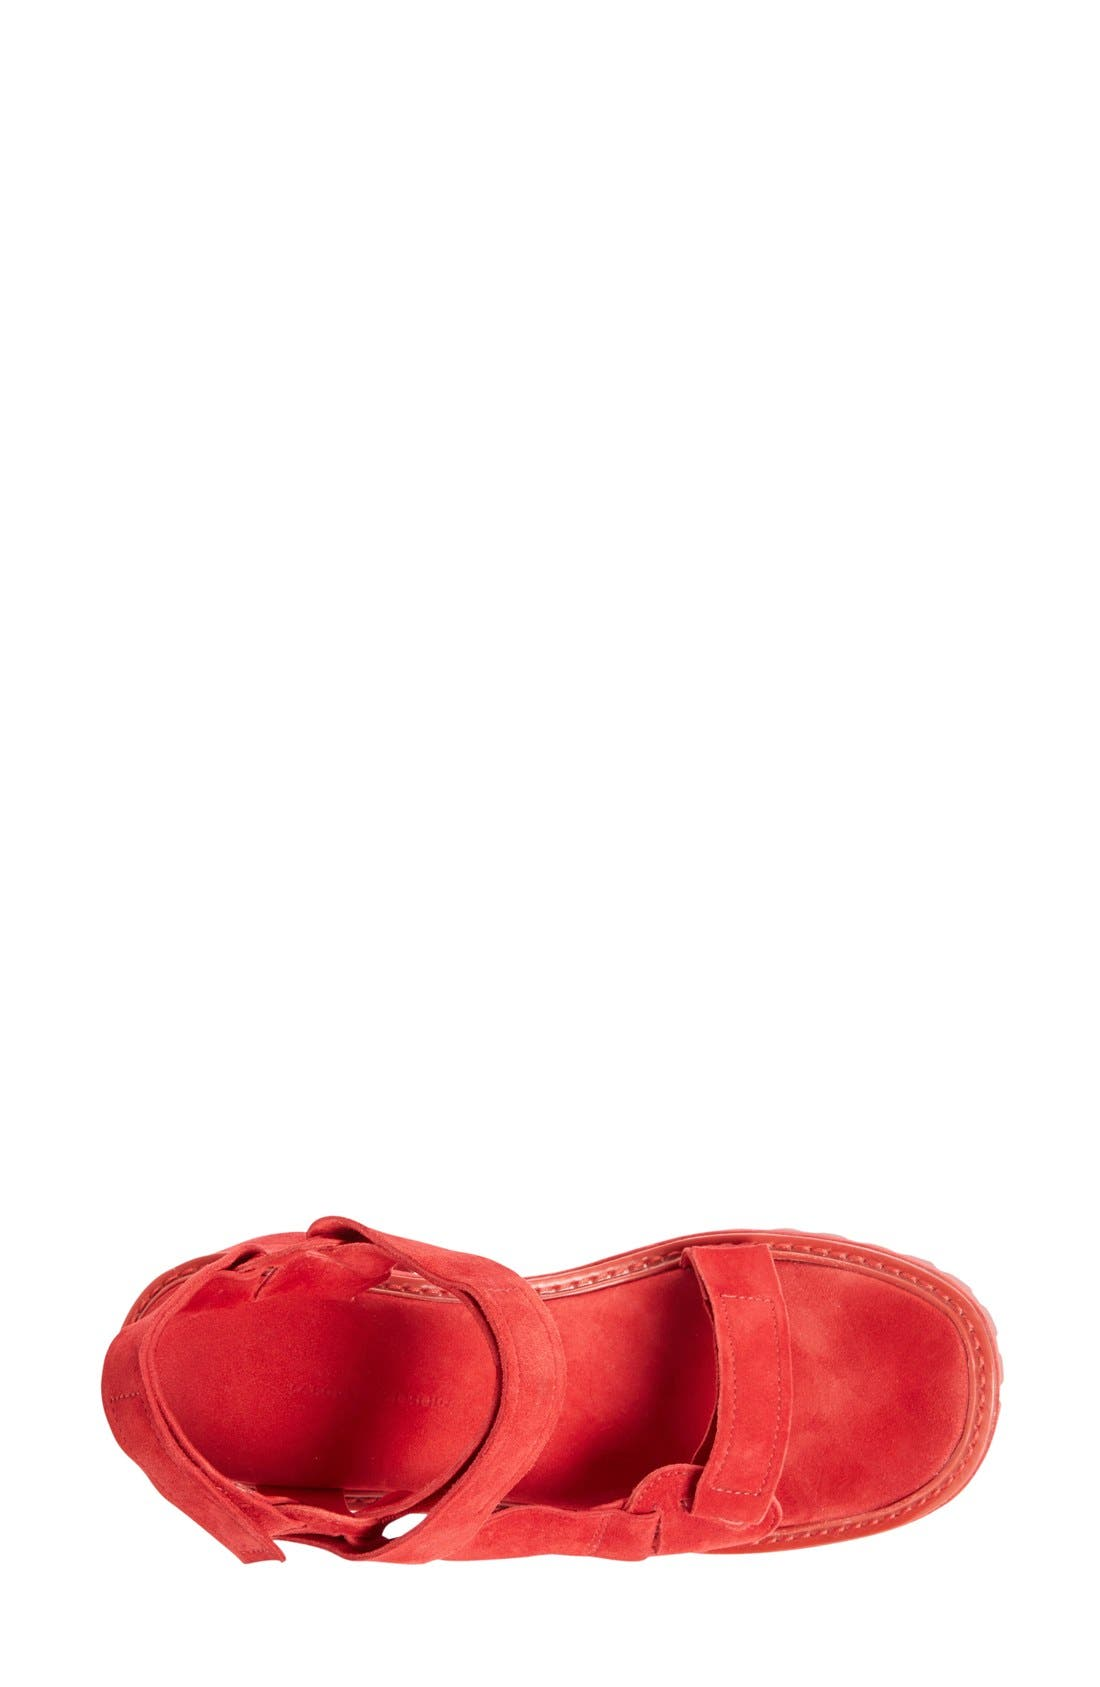 Alternate Image 3  - Marques'Almeida Chunky Heel Sandal (Women)